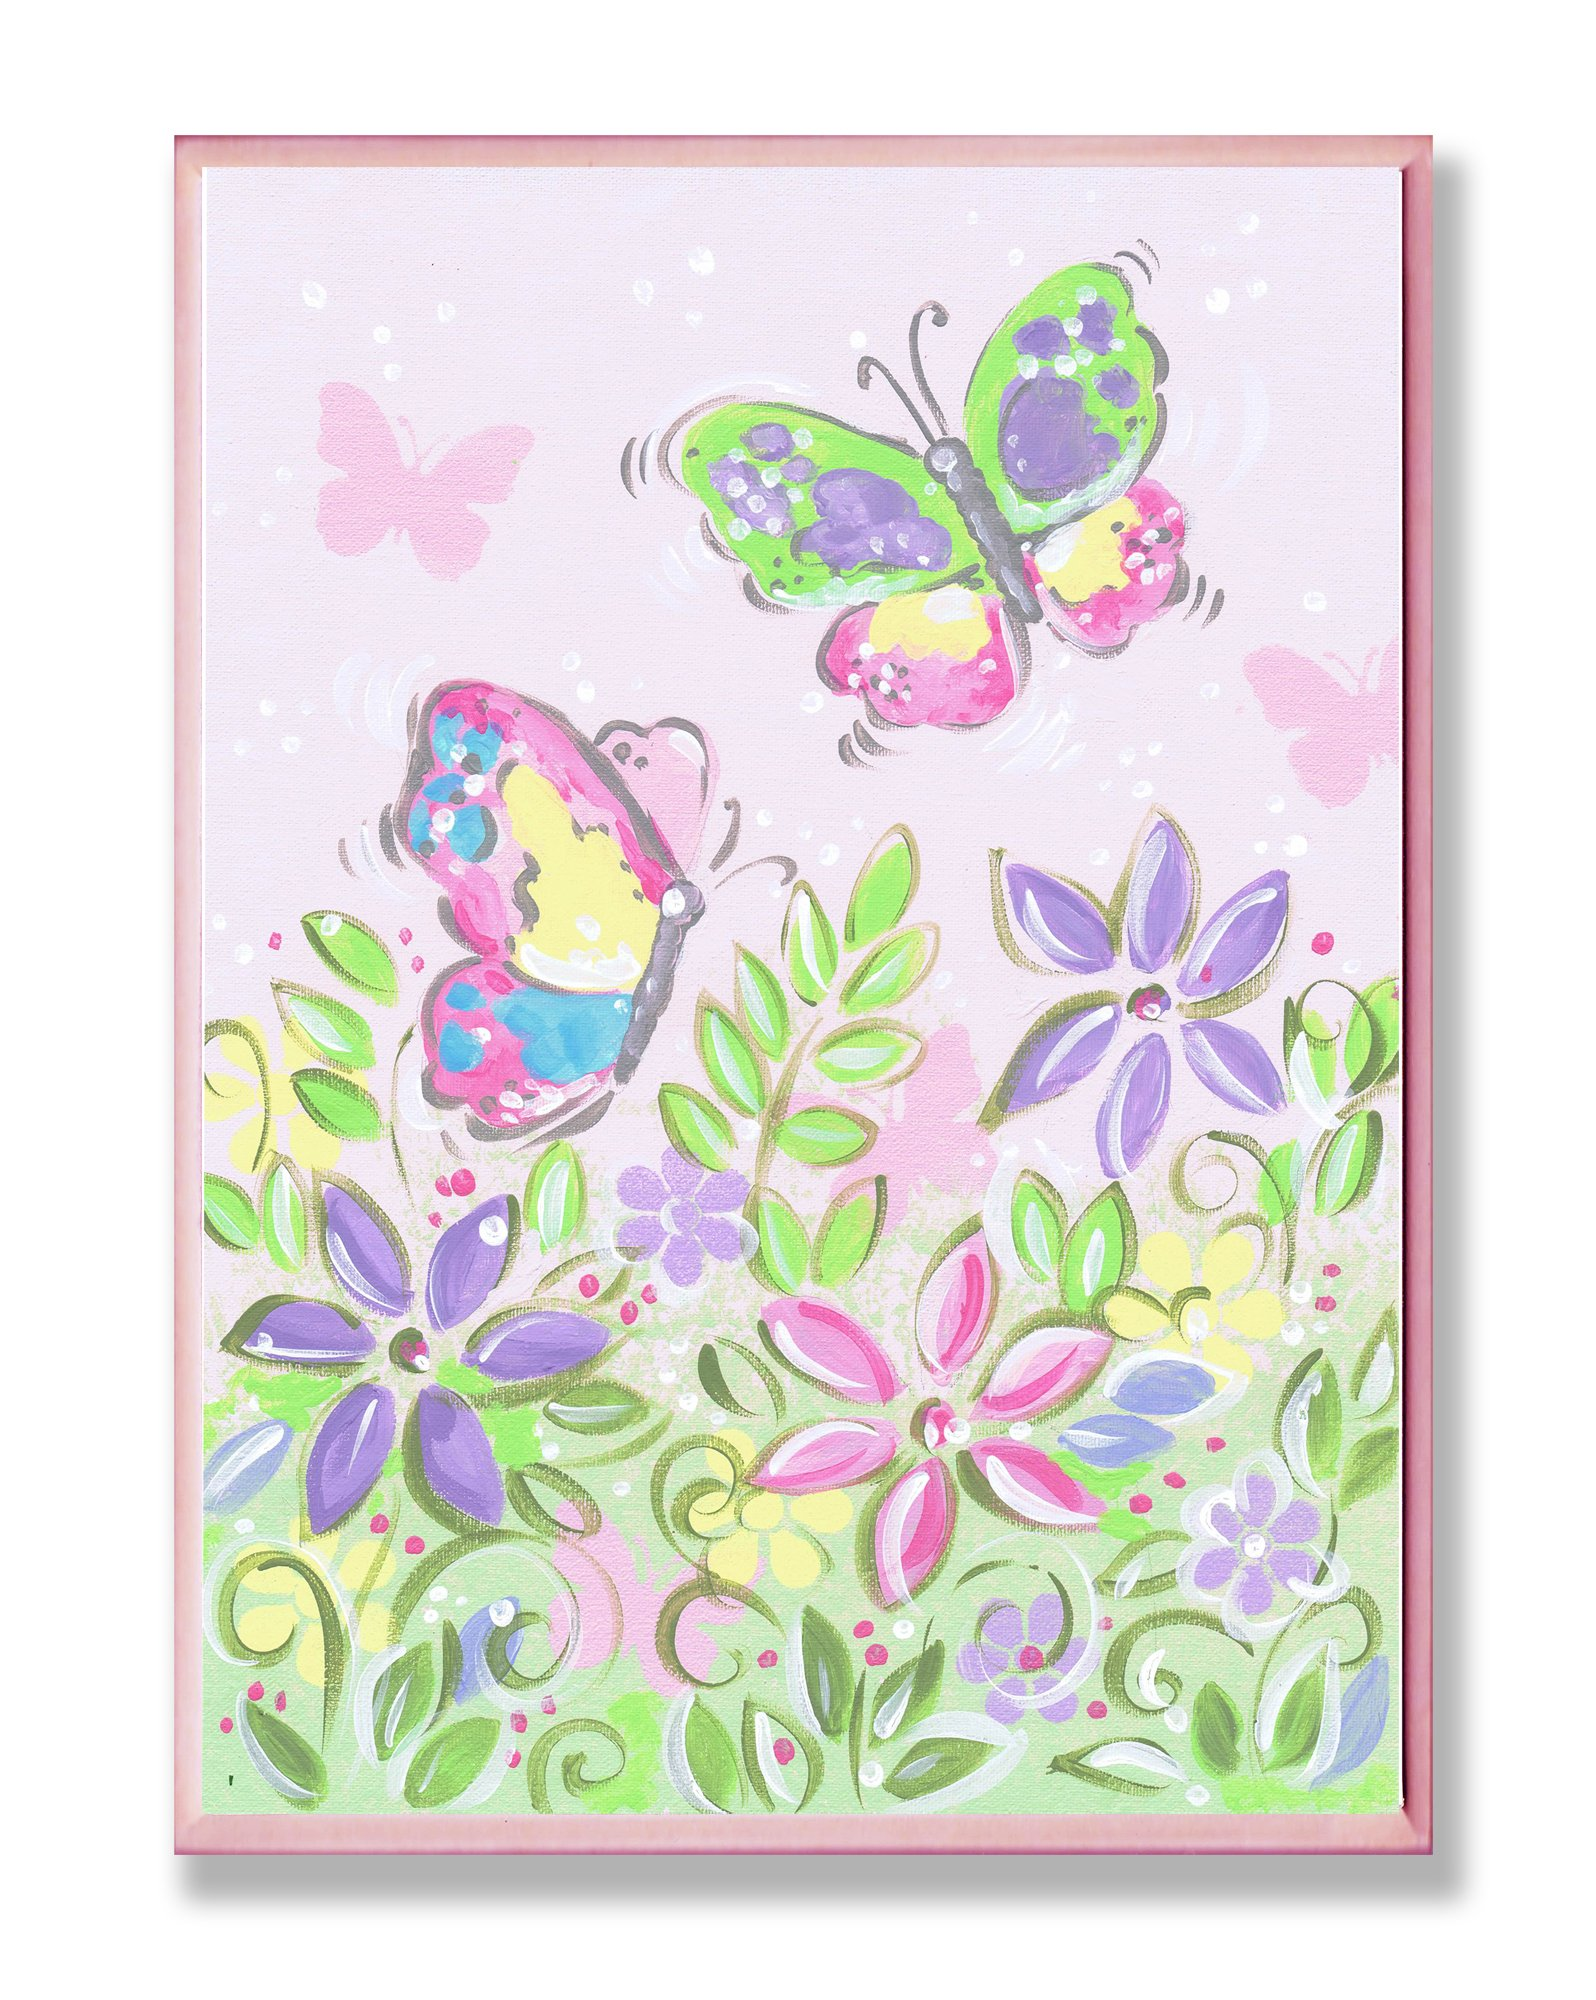 The Kids Room by Stupell Pastel Butterflies and Flowers Rectangle Wall Plaque by The Kids Room by Stupell